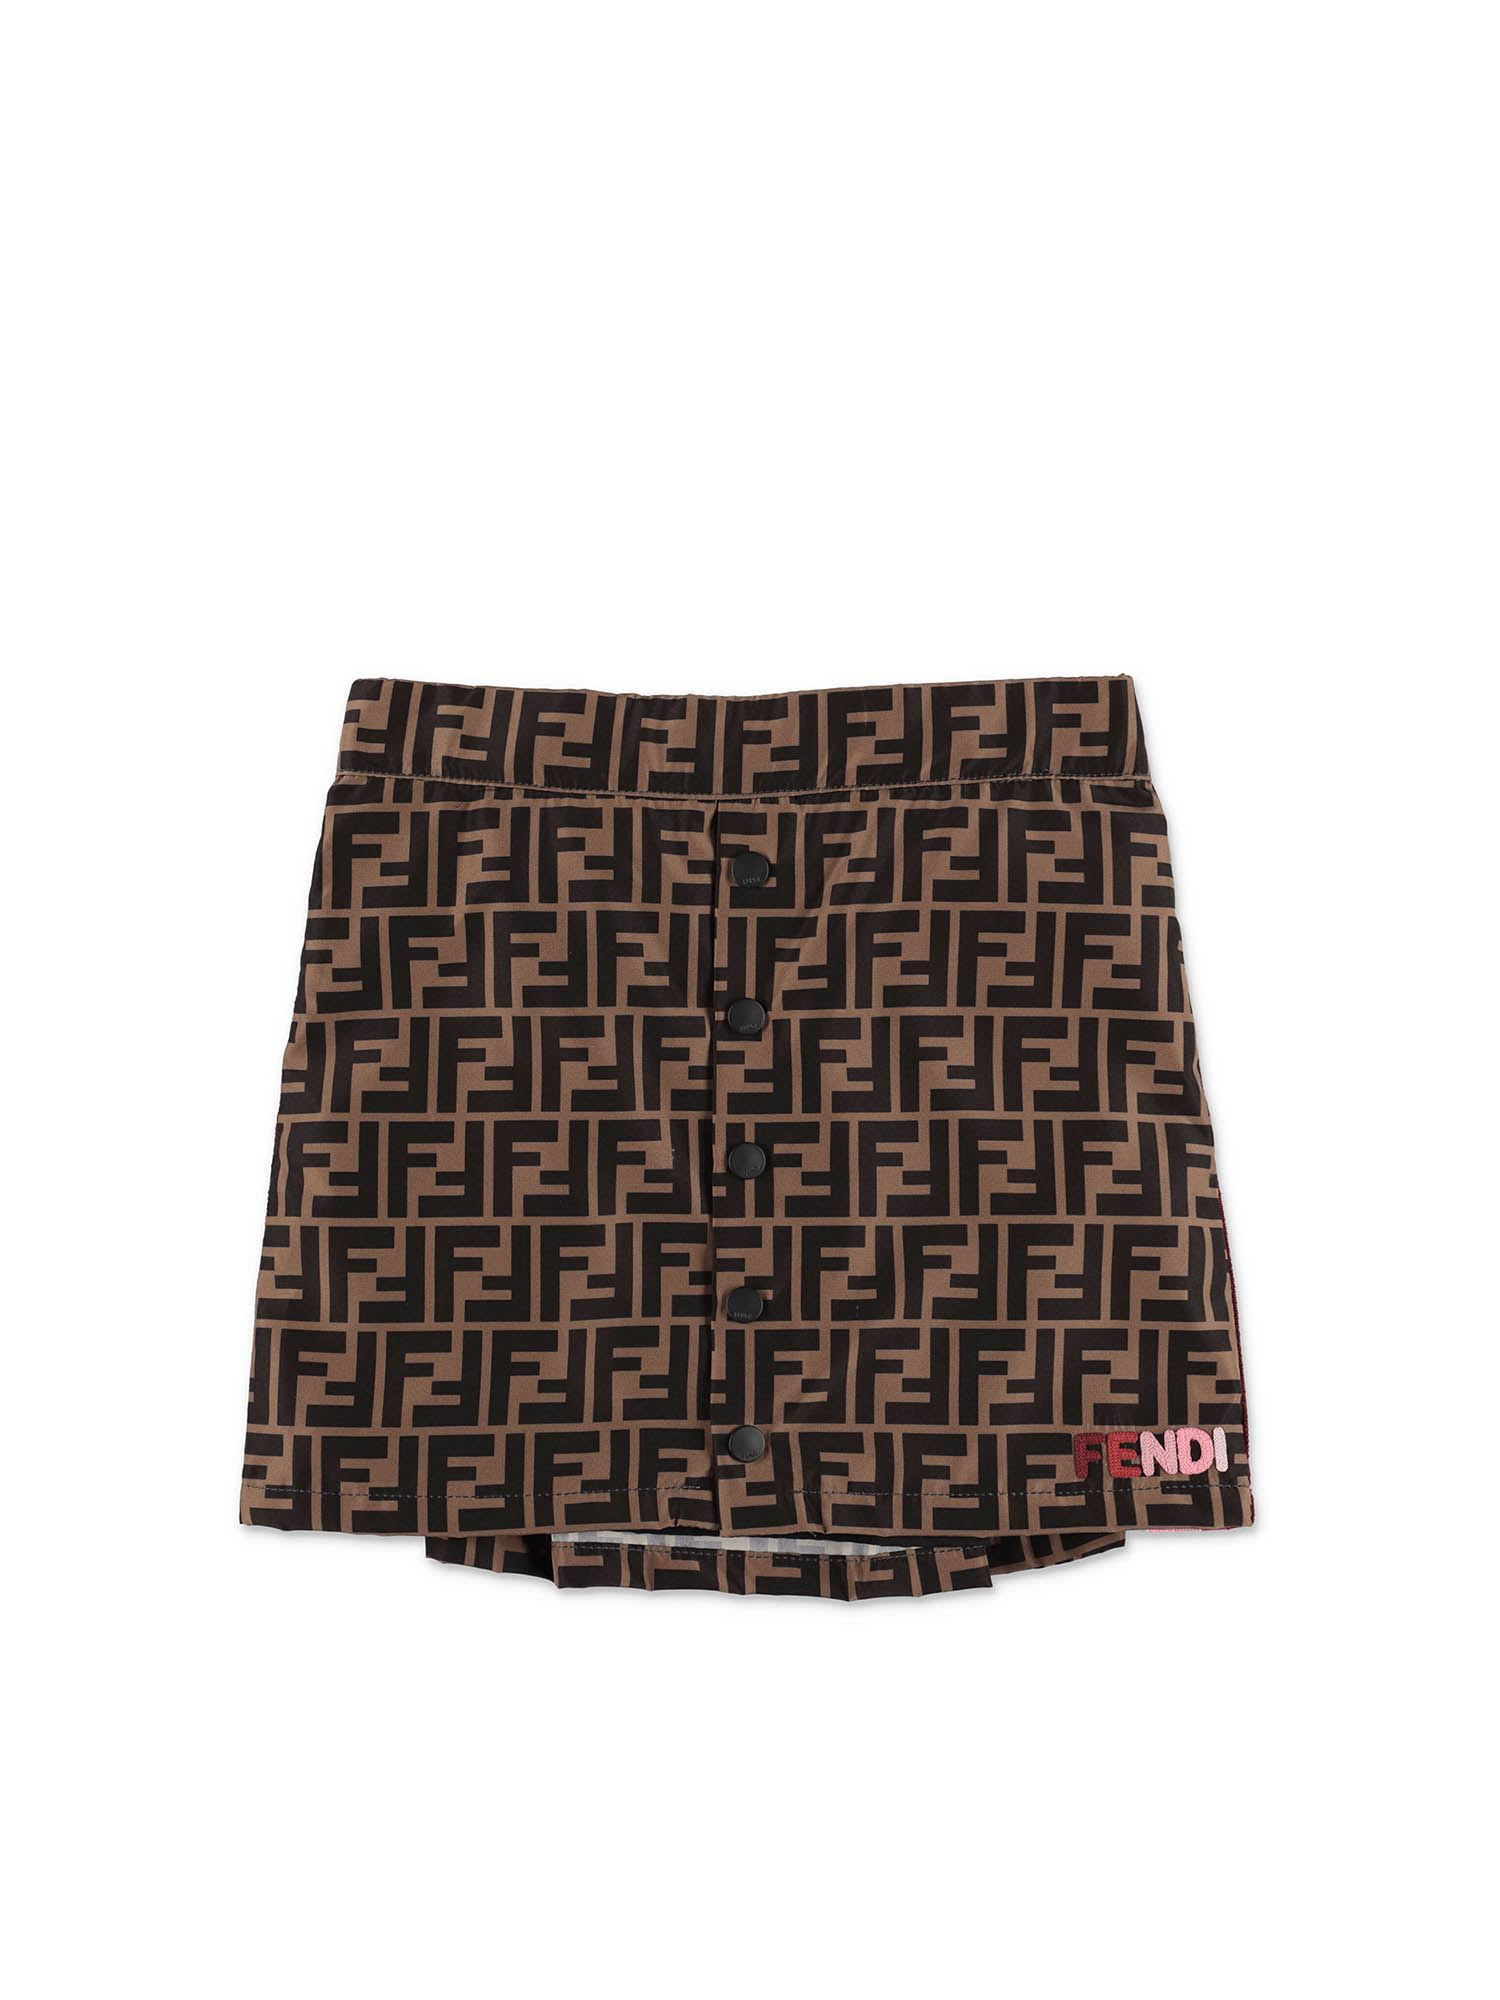 Fendi Jr ZUCCA PRINT SKIRT IN BROWN